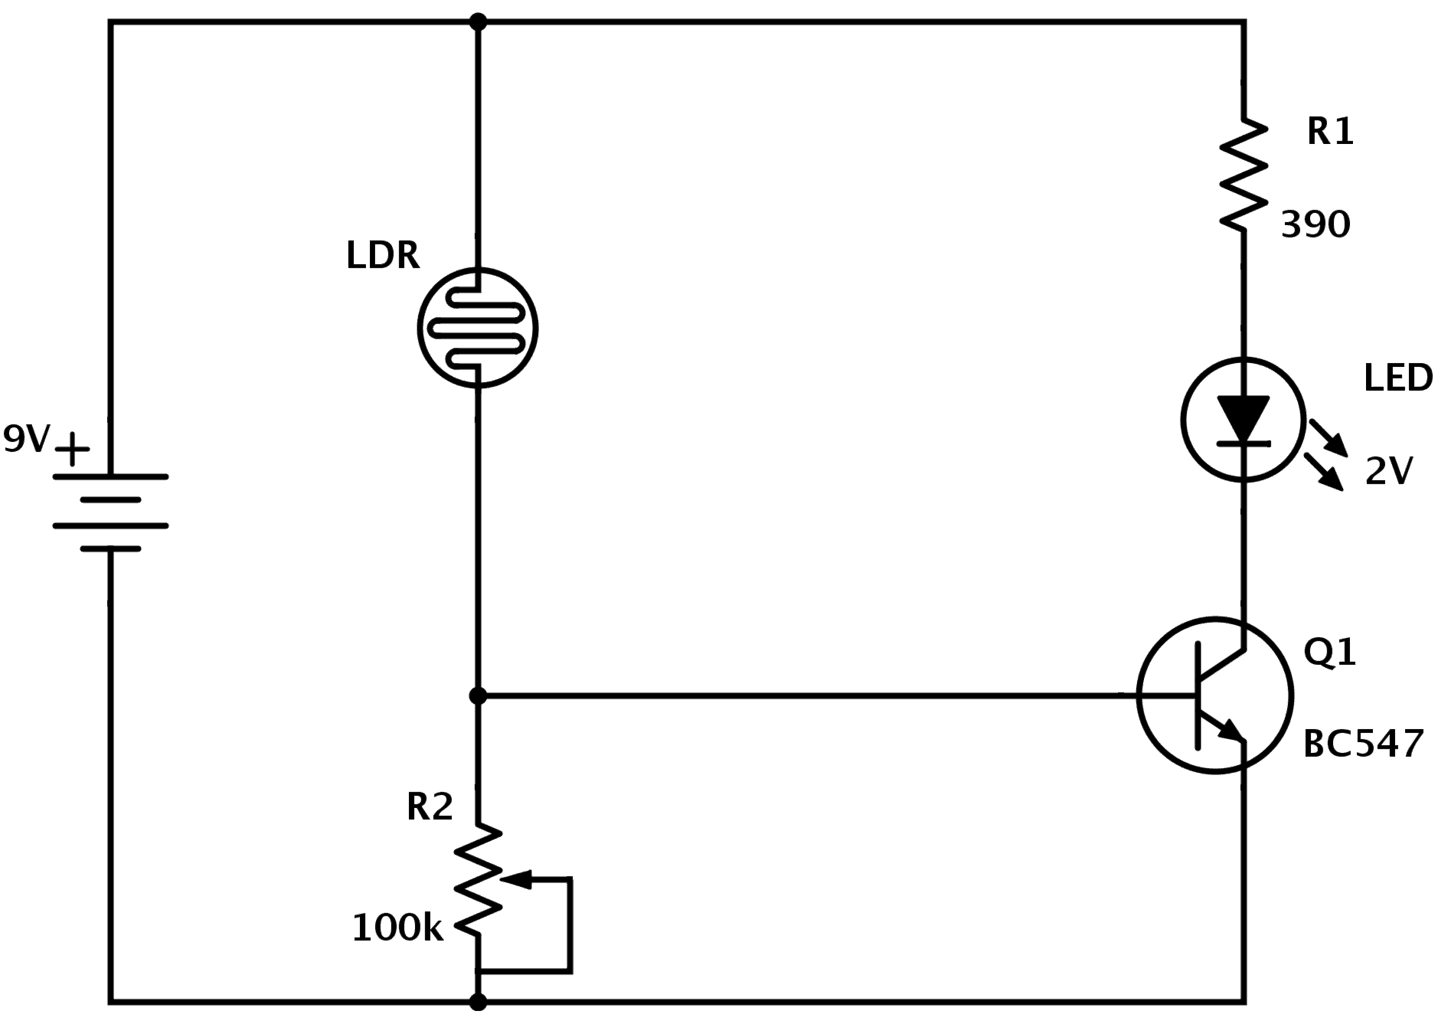 LDR circuit improved circuit diagram how to read and understand any schematic circuit diagram pdf at crackthecode.co